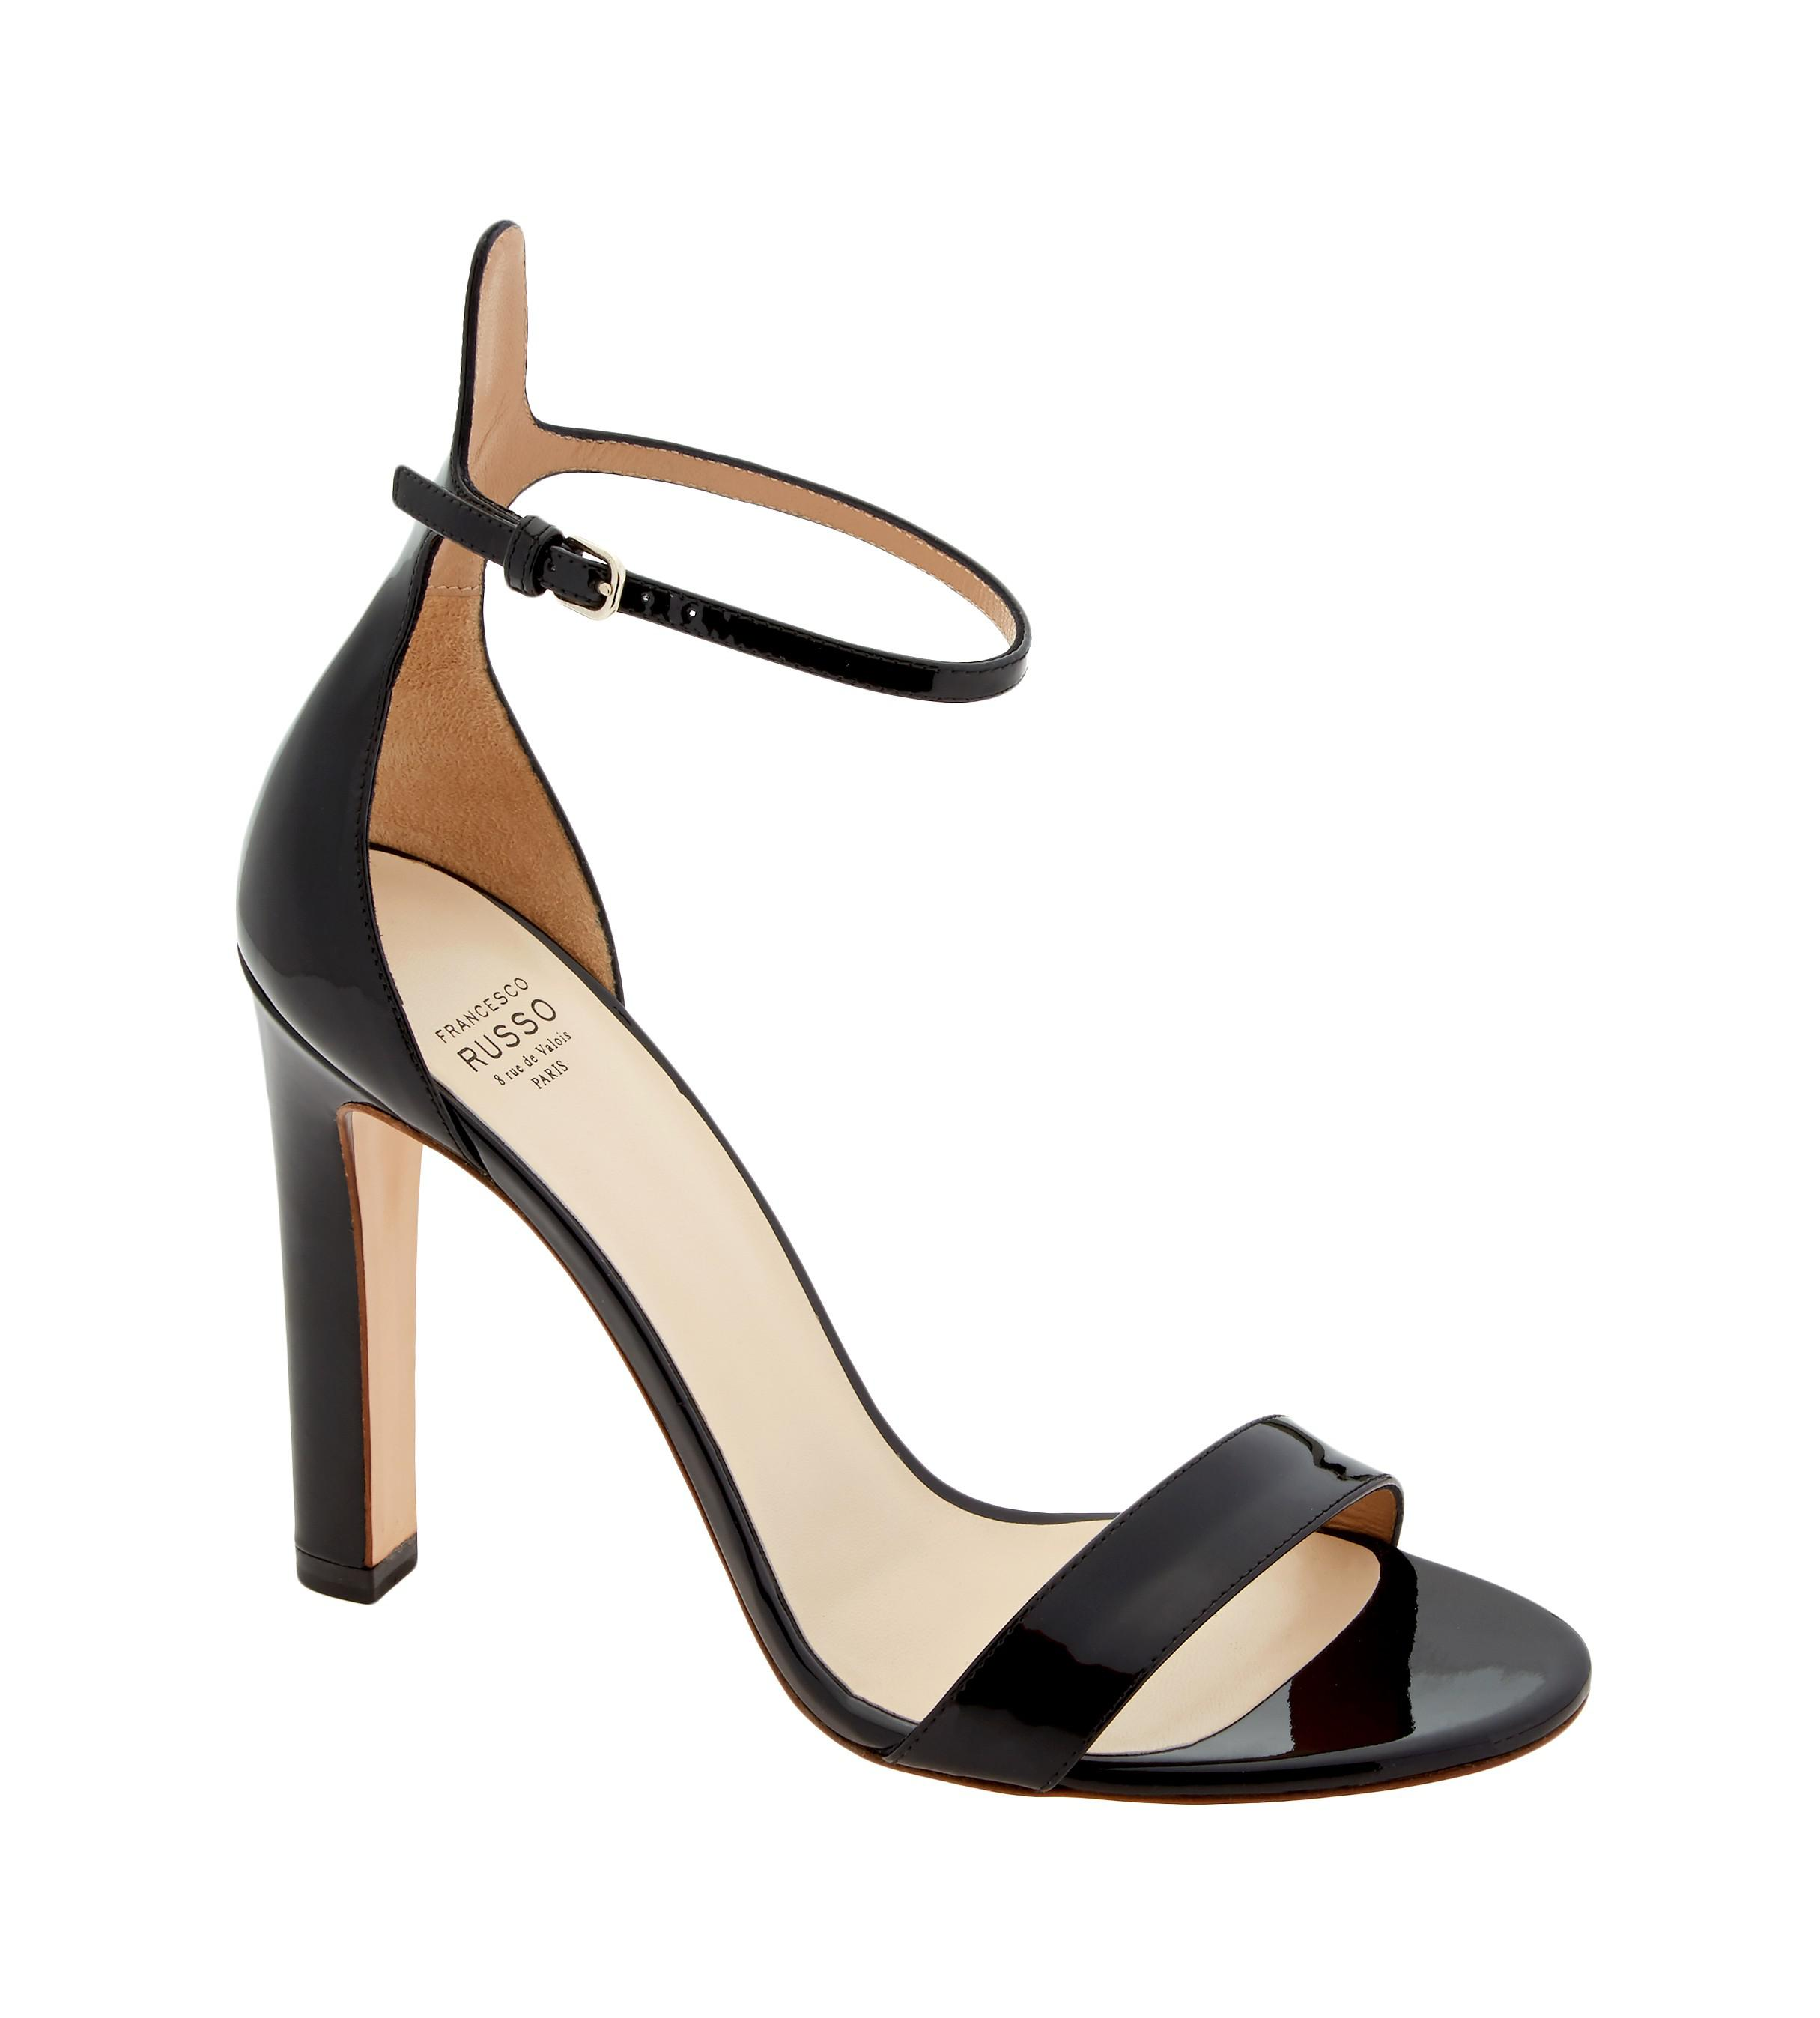 452eb89afd87 Lyst - Francesco Russo Vernice Patent Leather Ankle Strap Heels in Black